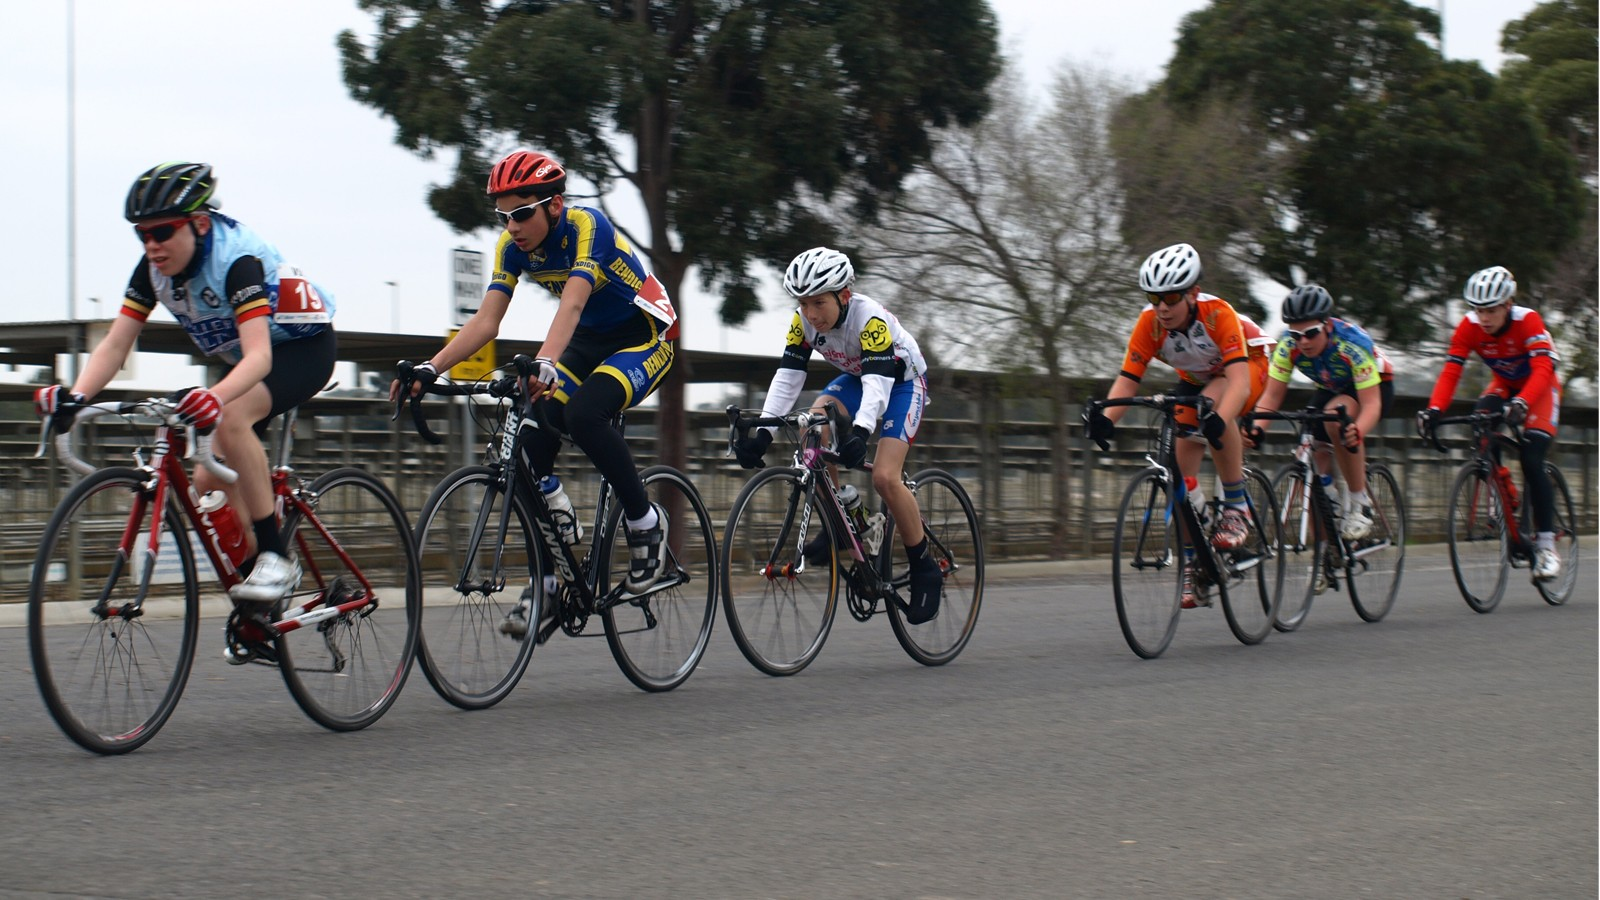 The VICS will give school aged kids the opportunity to get into bike racing